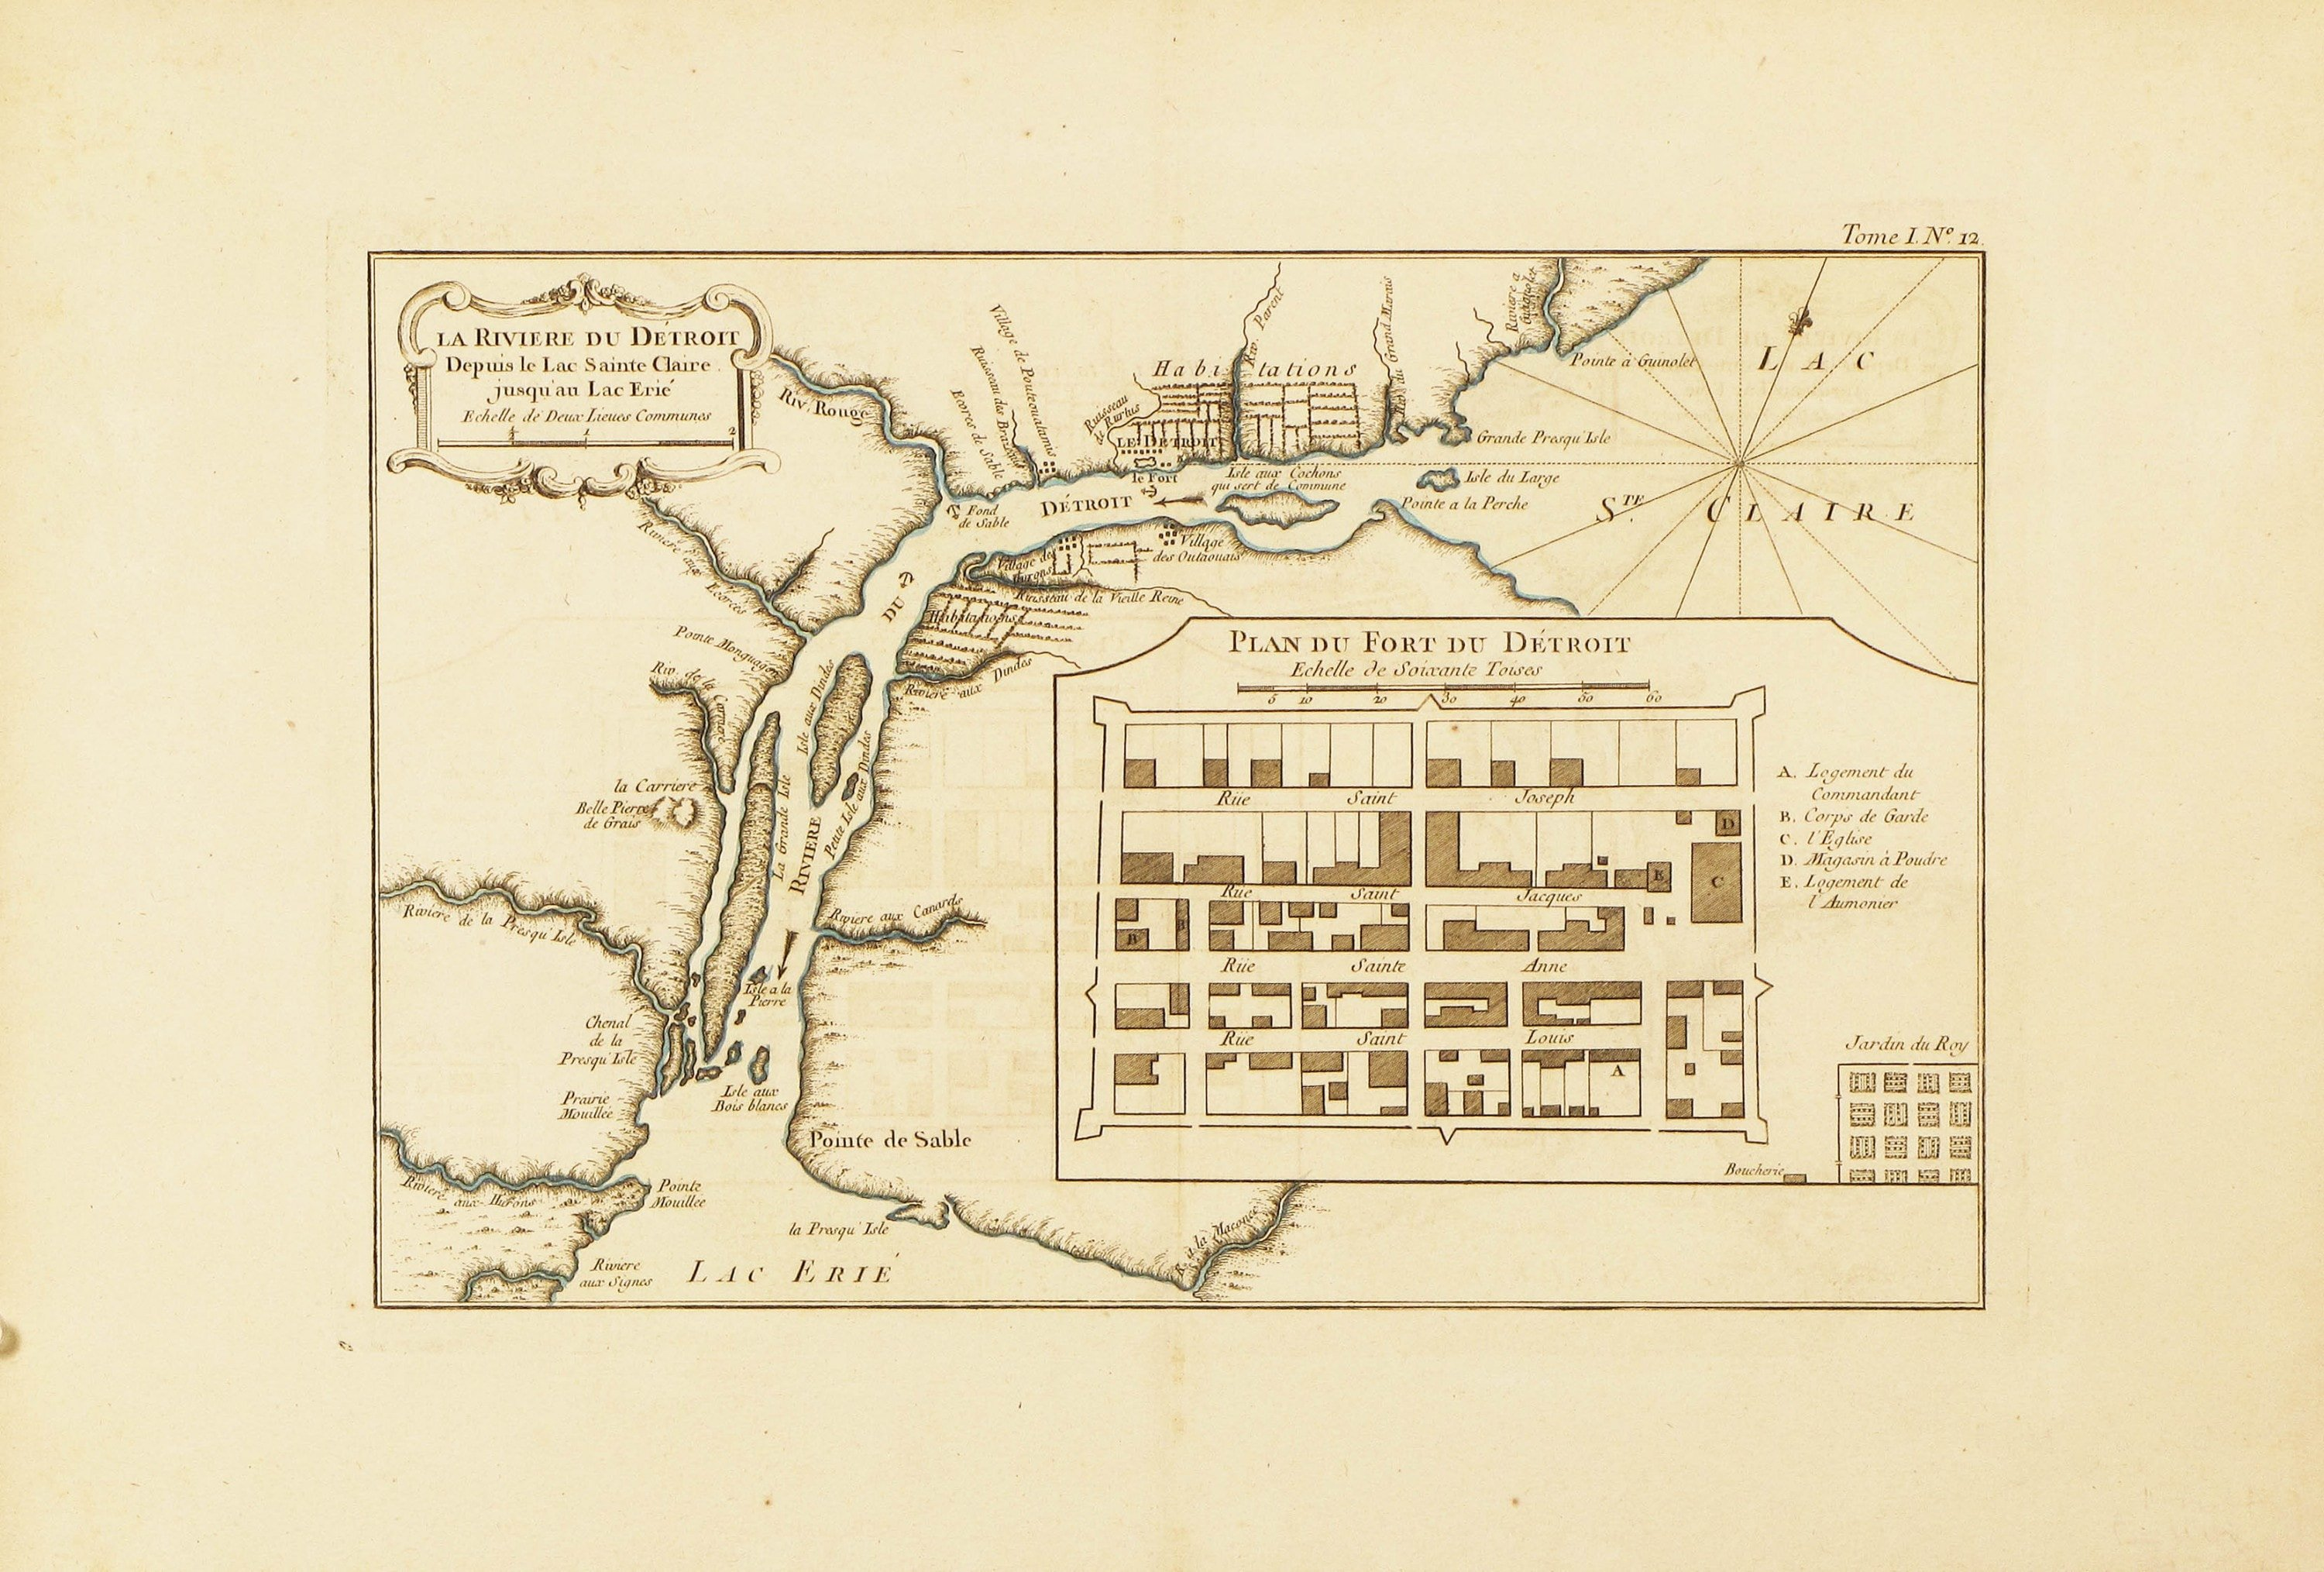 The first published map of Detroit - Rare & Antique Maps on memphis map, united states map, duluth map, chicago map, toronto map, henry ford hospital map, royal oak map, great lakes map, cincinnati map, compton map, michigan map, las vegas map, pittsburgh map, atlanta map, quebec map, baltimore map, highland park map, usa map, st louis on map, new york map,